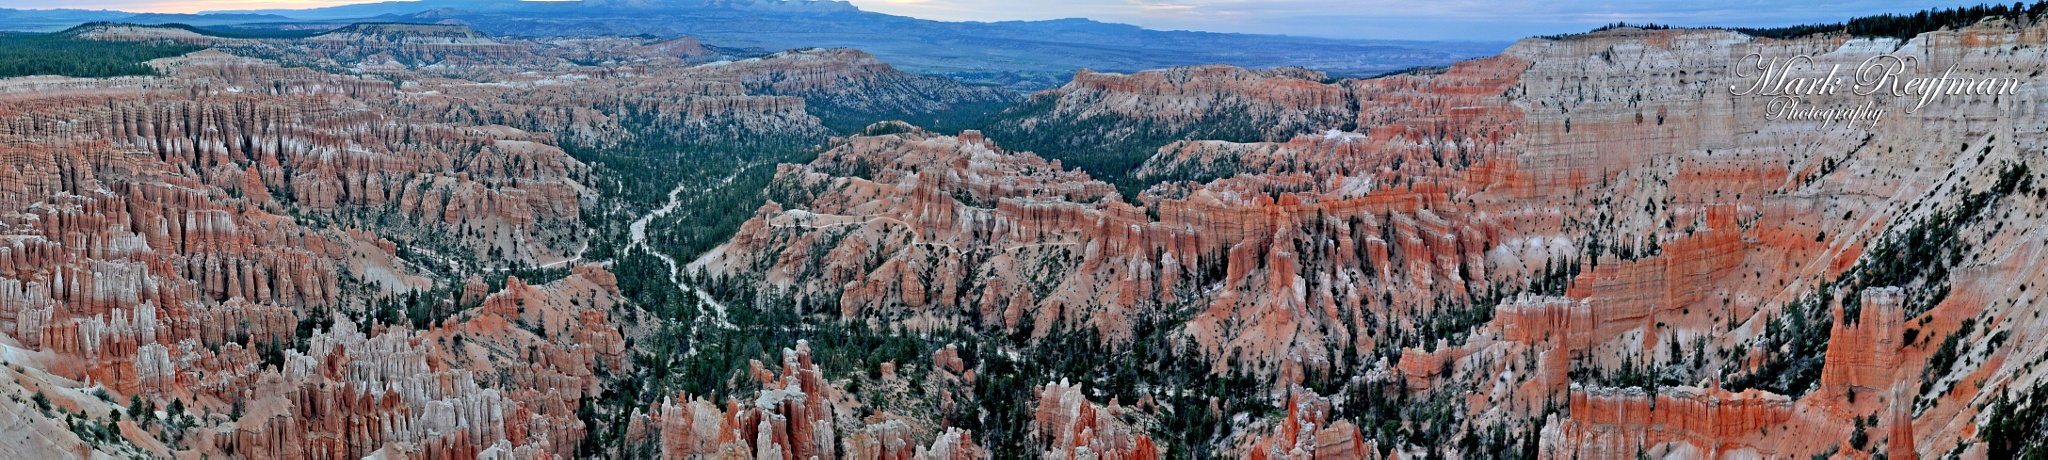 Bryce Canyon Pano by marchik68